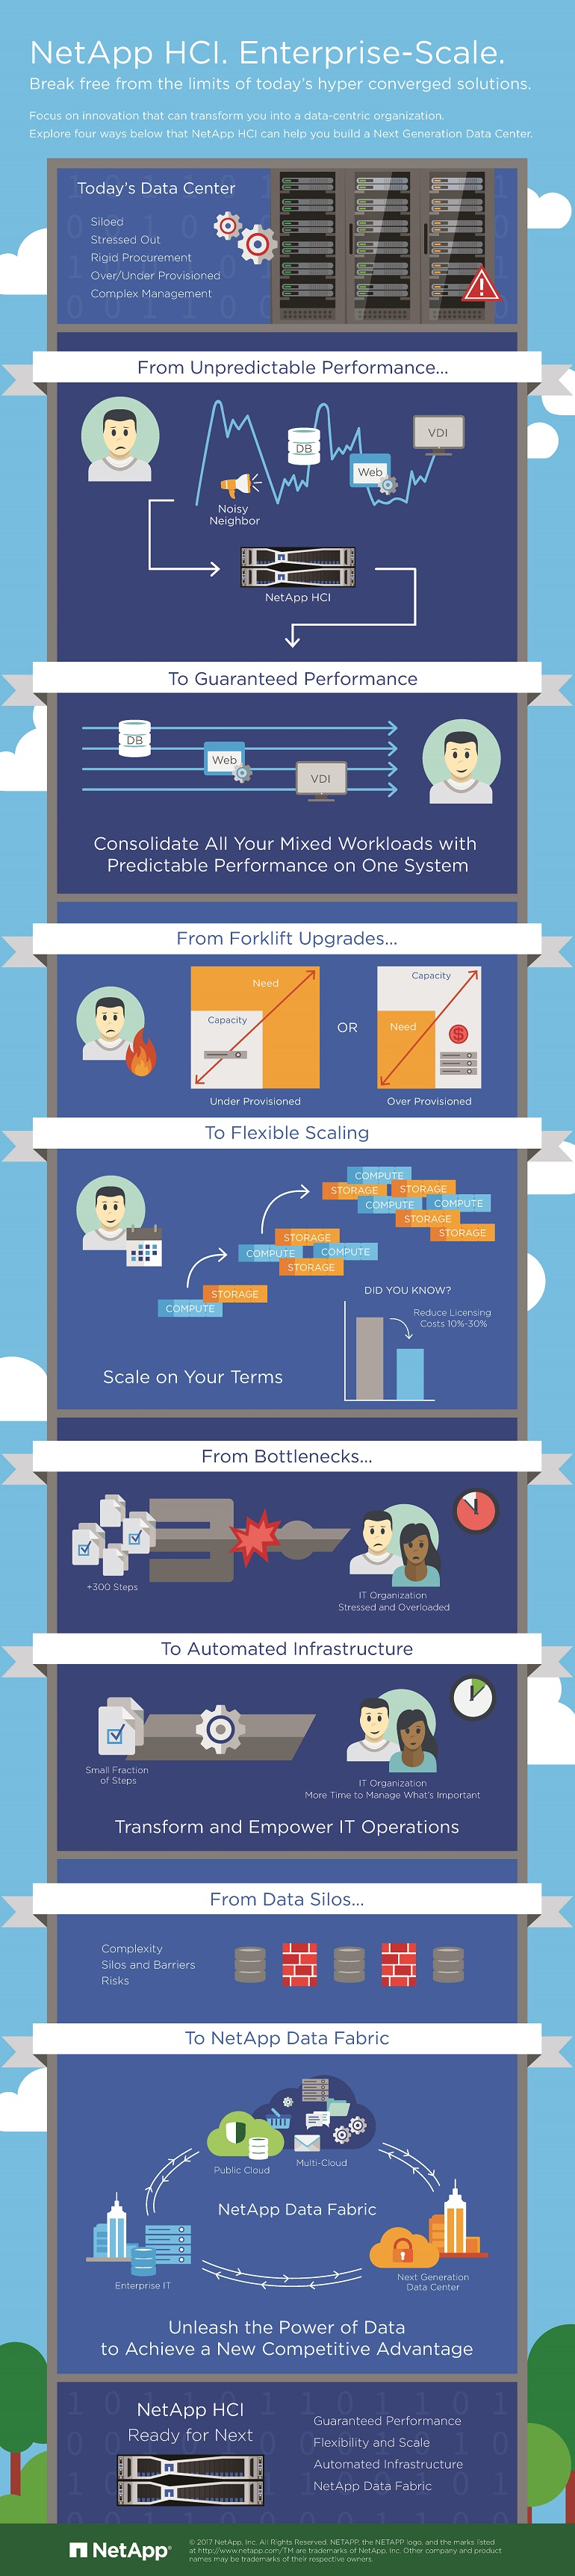 Infographic displaying NetApp HCI Enterprise-Scale. Translated below.